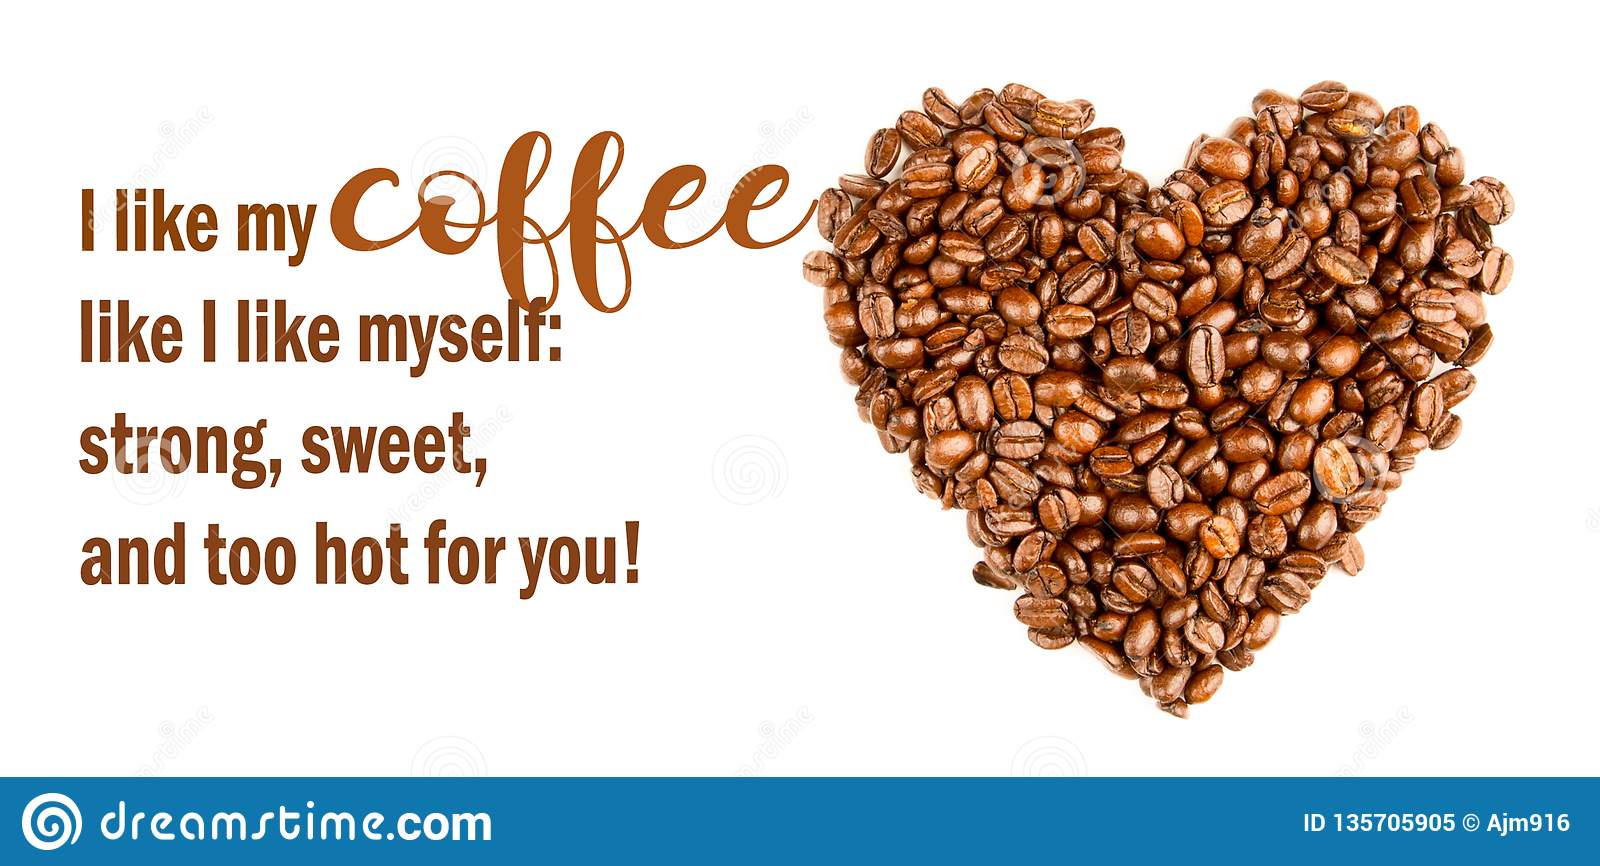 Funny Coffee Memes Sassy,Coffee Sweet As Love. Cool Quotes Stock ... #strongCoffee